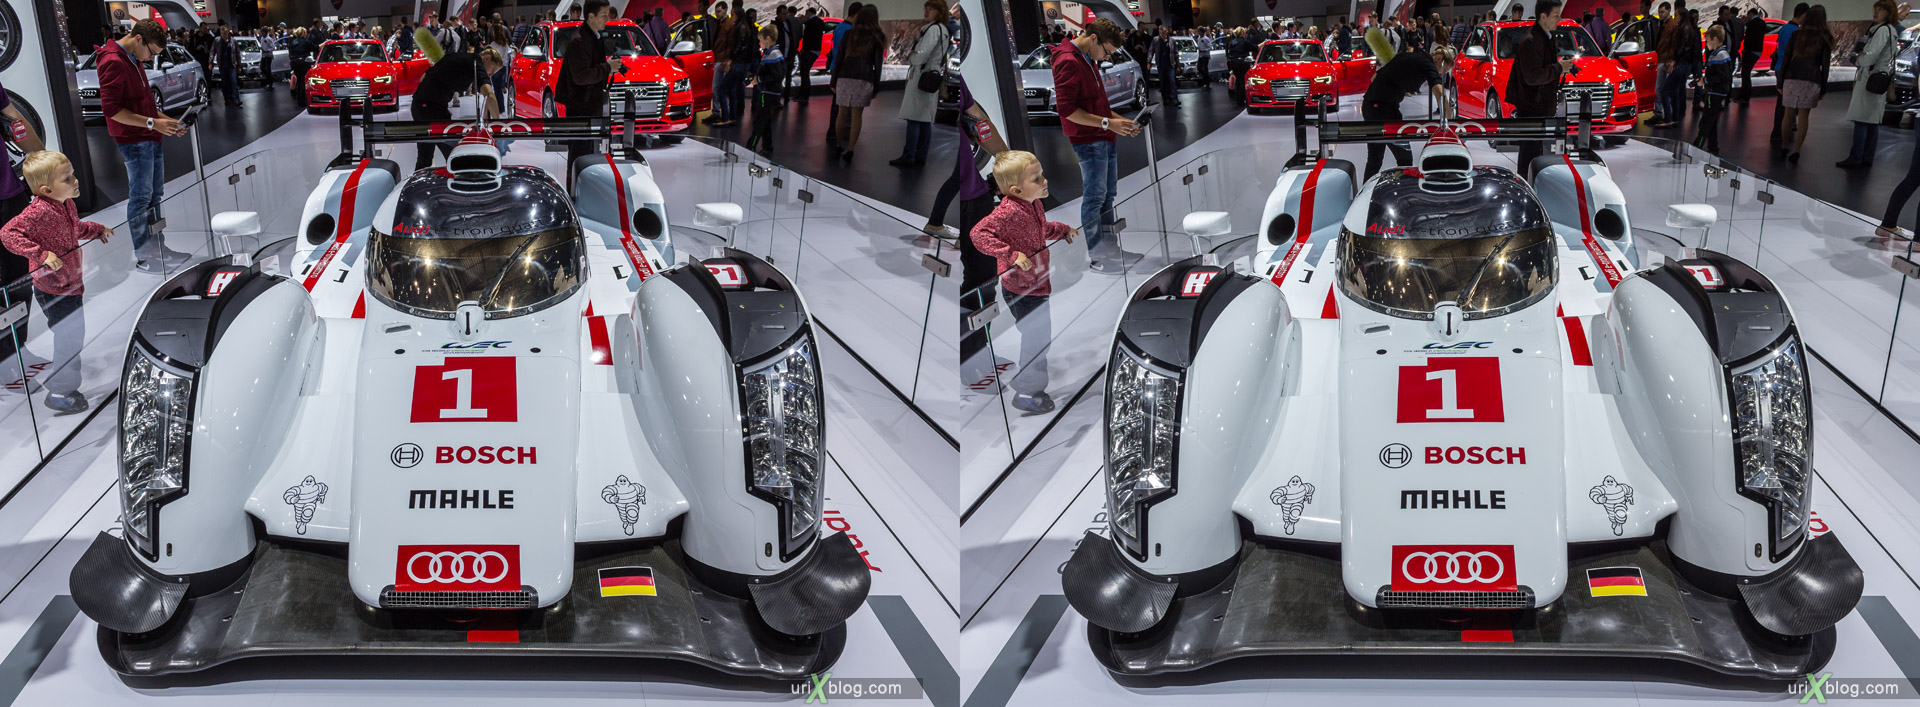 2014, Audi R18 e-tron quattro, Moscow International Automobile Salon, MIAS, Crocus Expo, Moscow, Russia, augest, 3D, stereo pair, cross-eyed, crossview, cross view stereo pair, stereoscopic